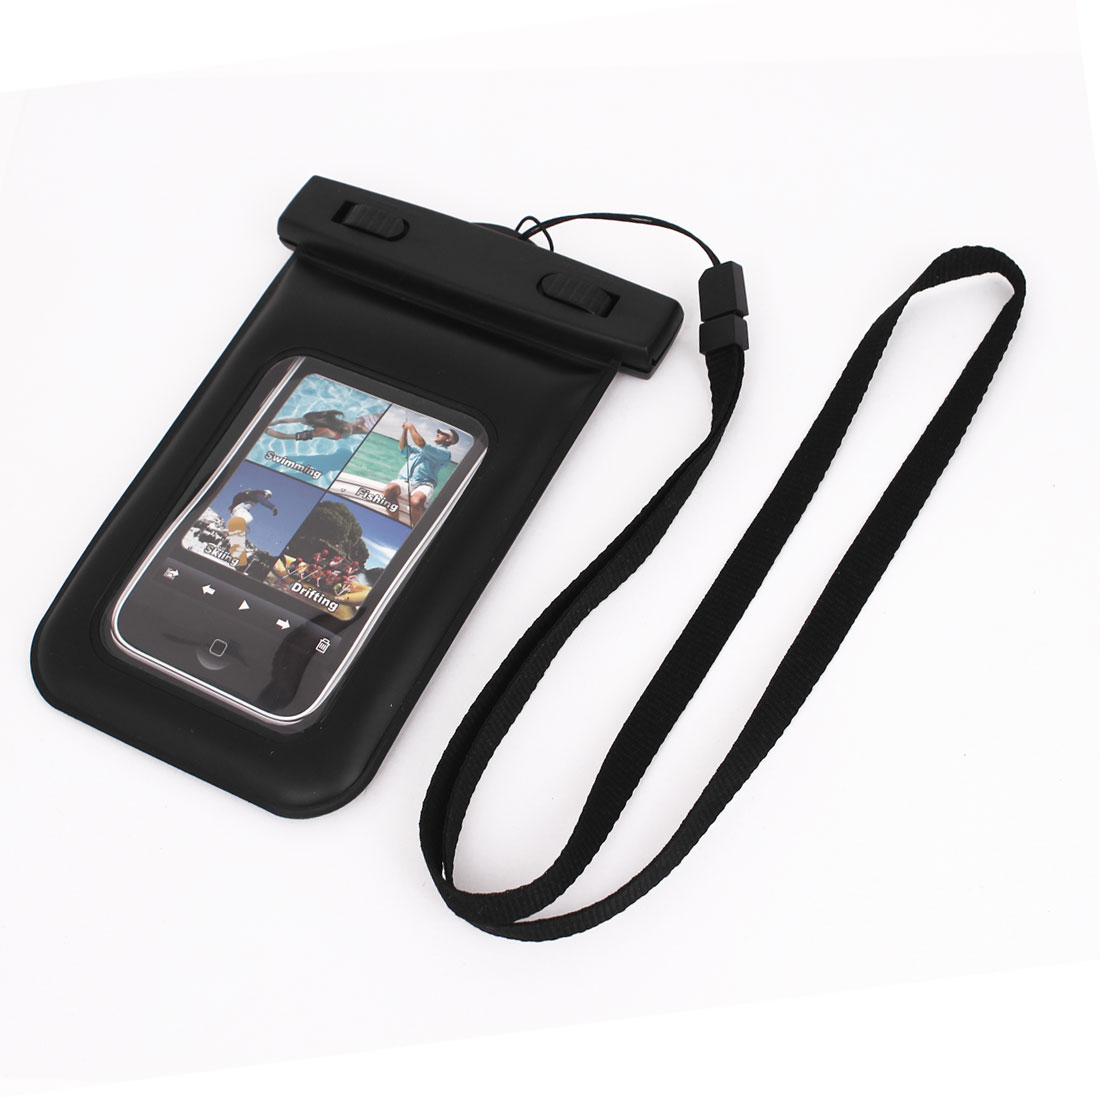 Waterproof Swimming Pouch Dry Bag Case Black for iPhone 4G w Neck Strap